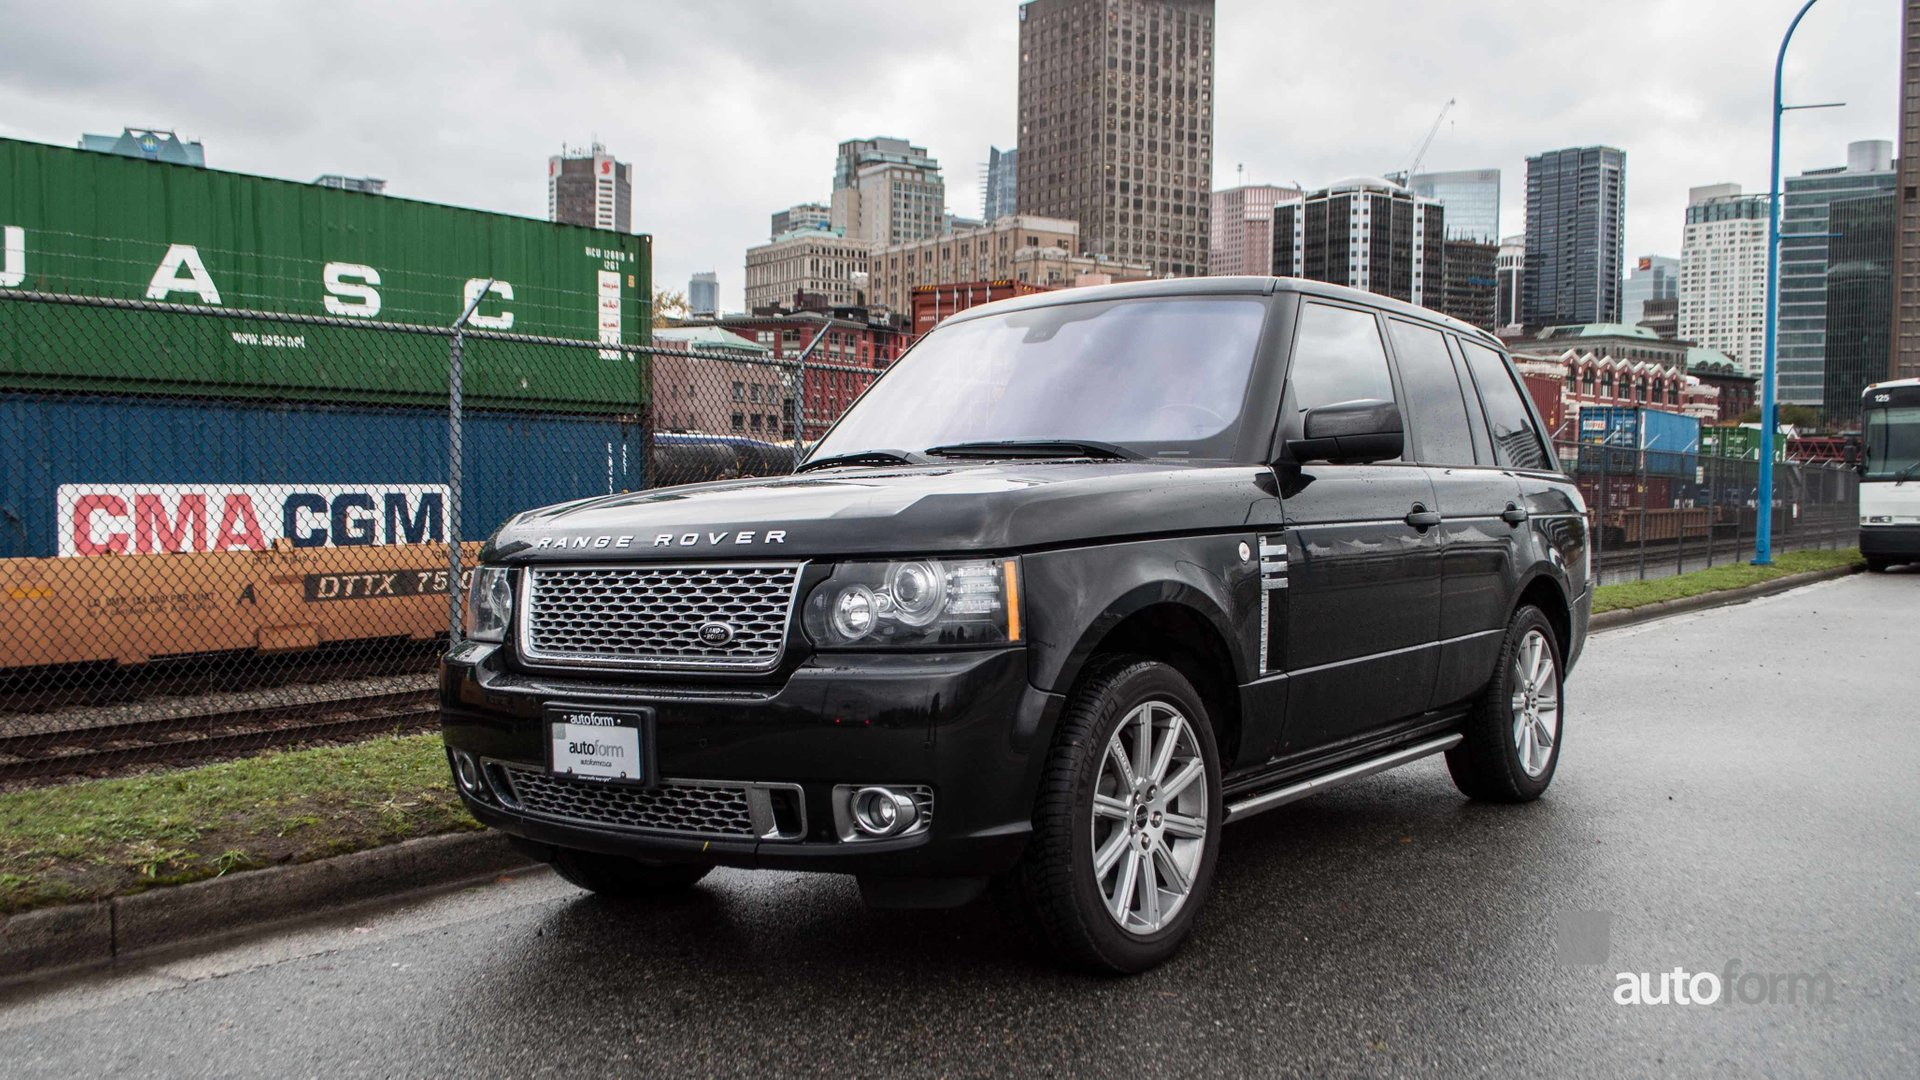 2012 land rover range rover autobiography supercharged